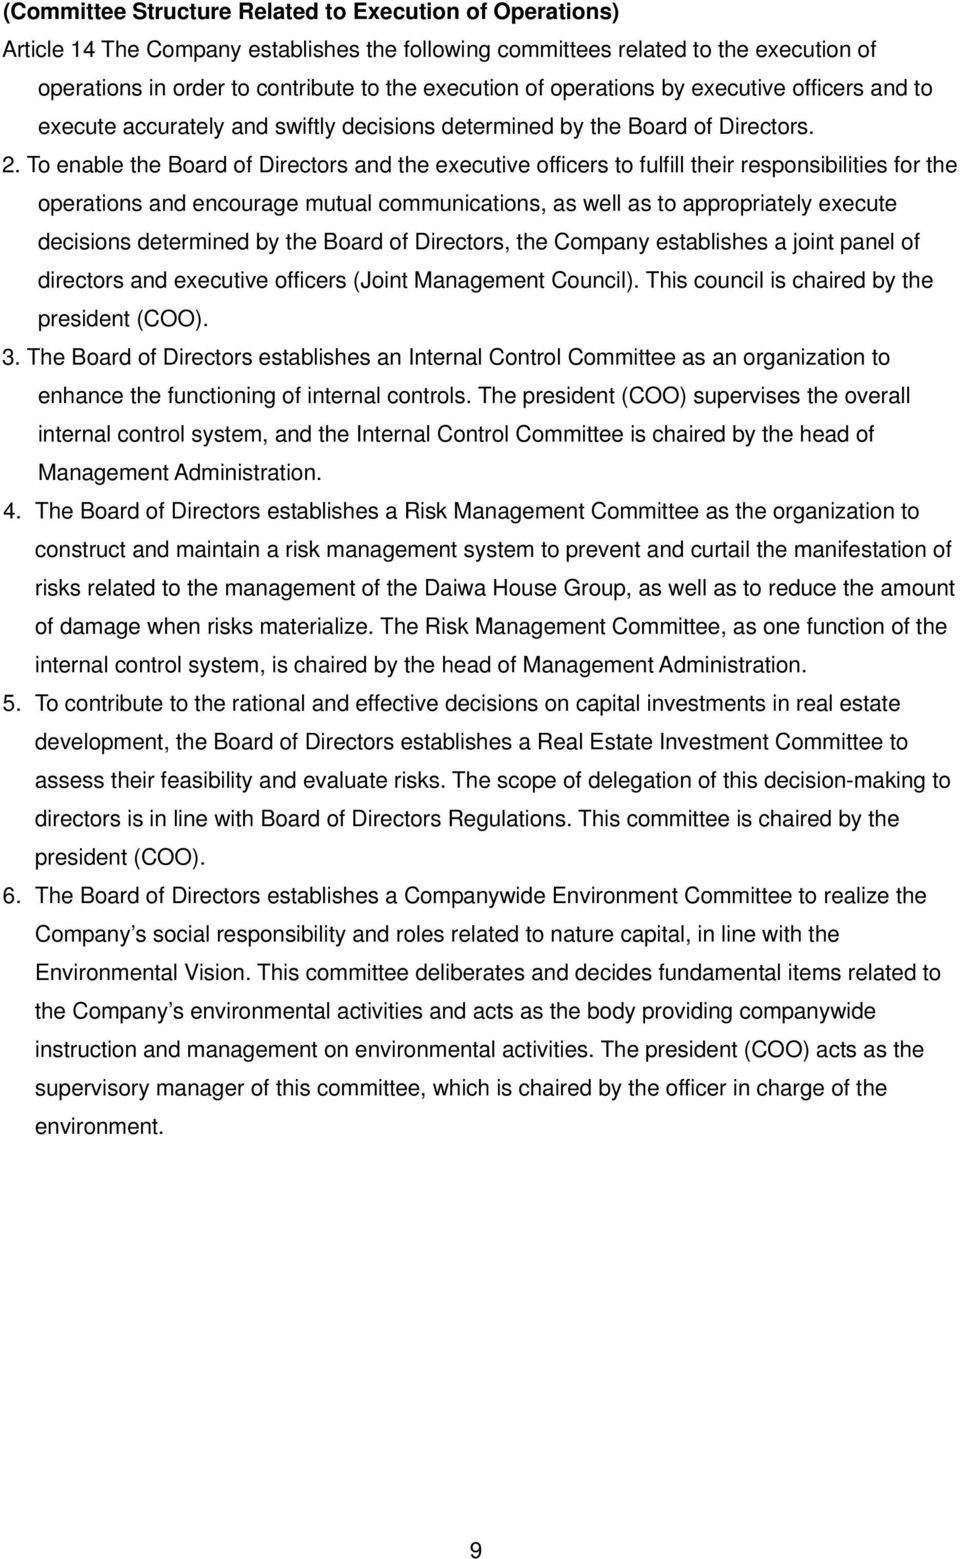 To enable the Board of Directors and the executive officers to fulfill their responsibilities for the operations and encourage mutual communications, as well as to appropriately execute decisions